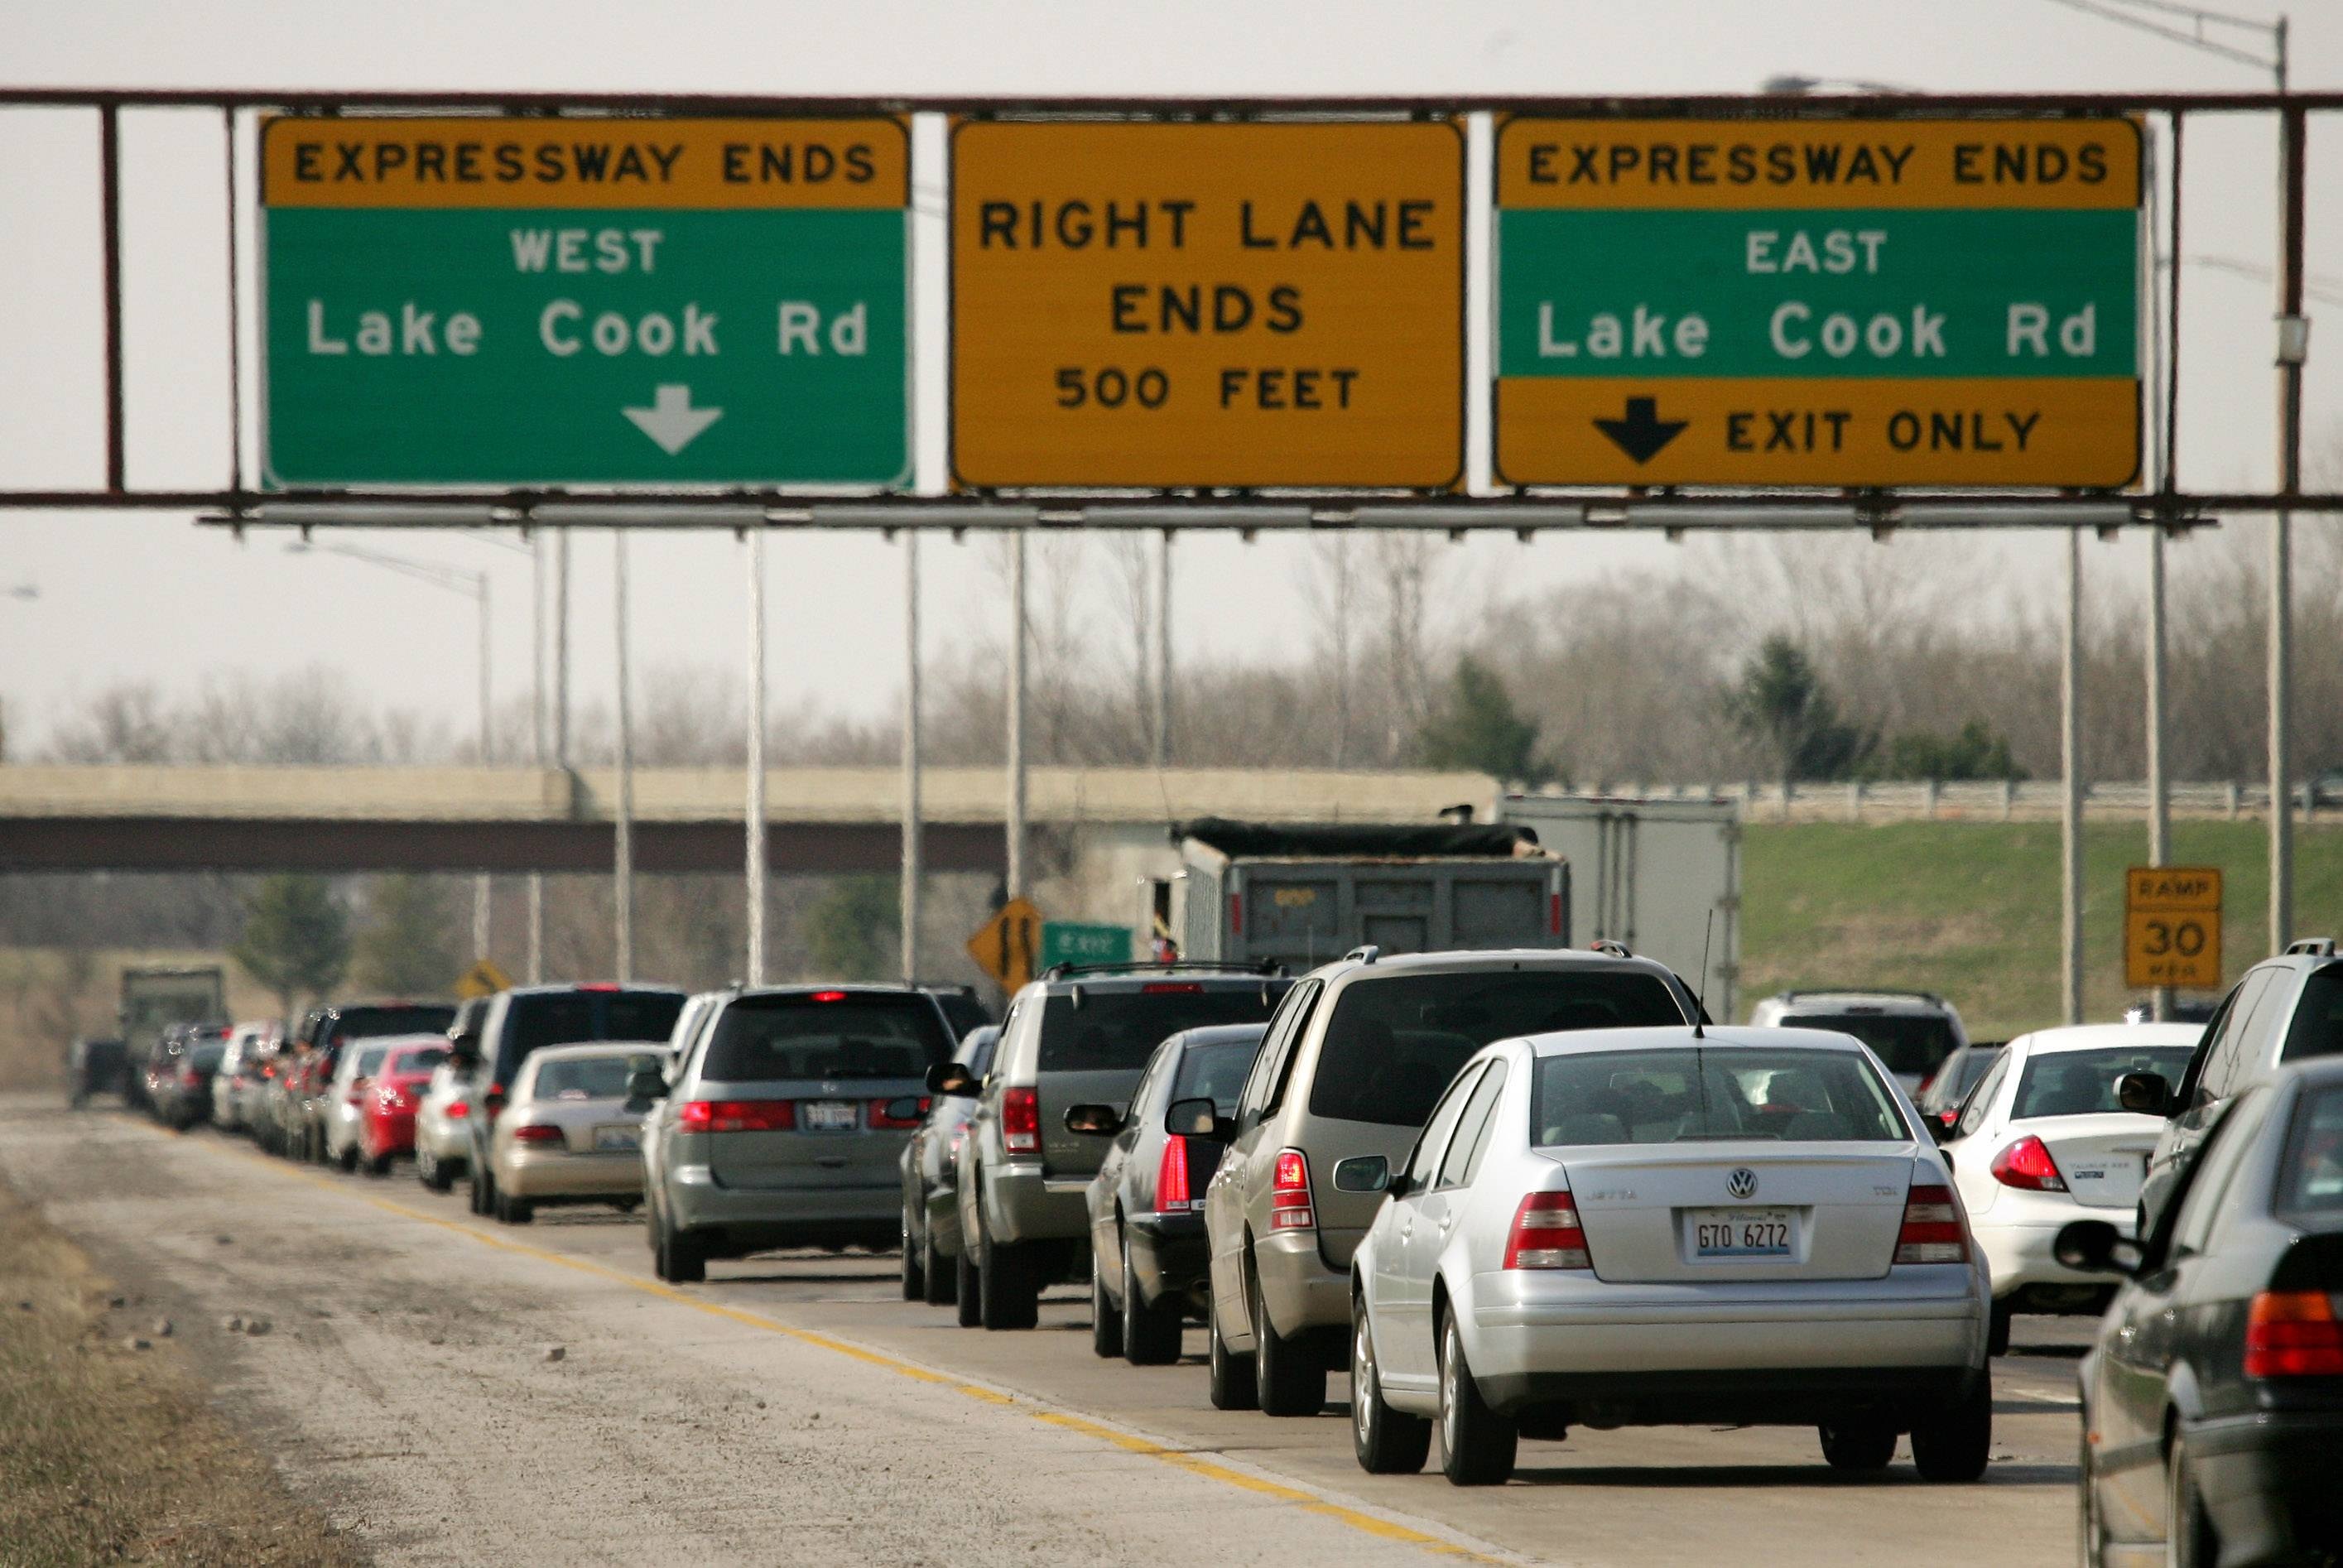 The Illinois Tollway board has budgeted $10 million toward an environmental impact study of a proposal to extend Route 53 through Lake County.